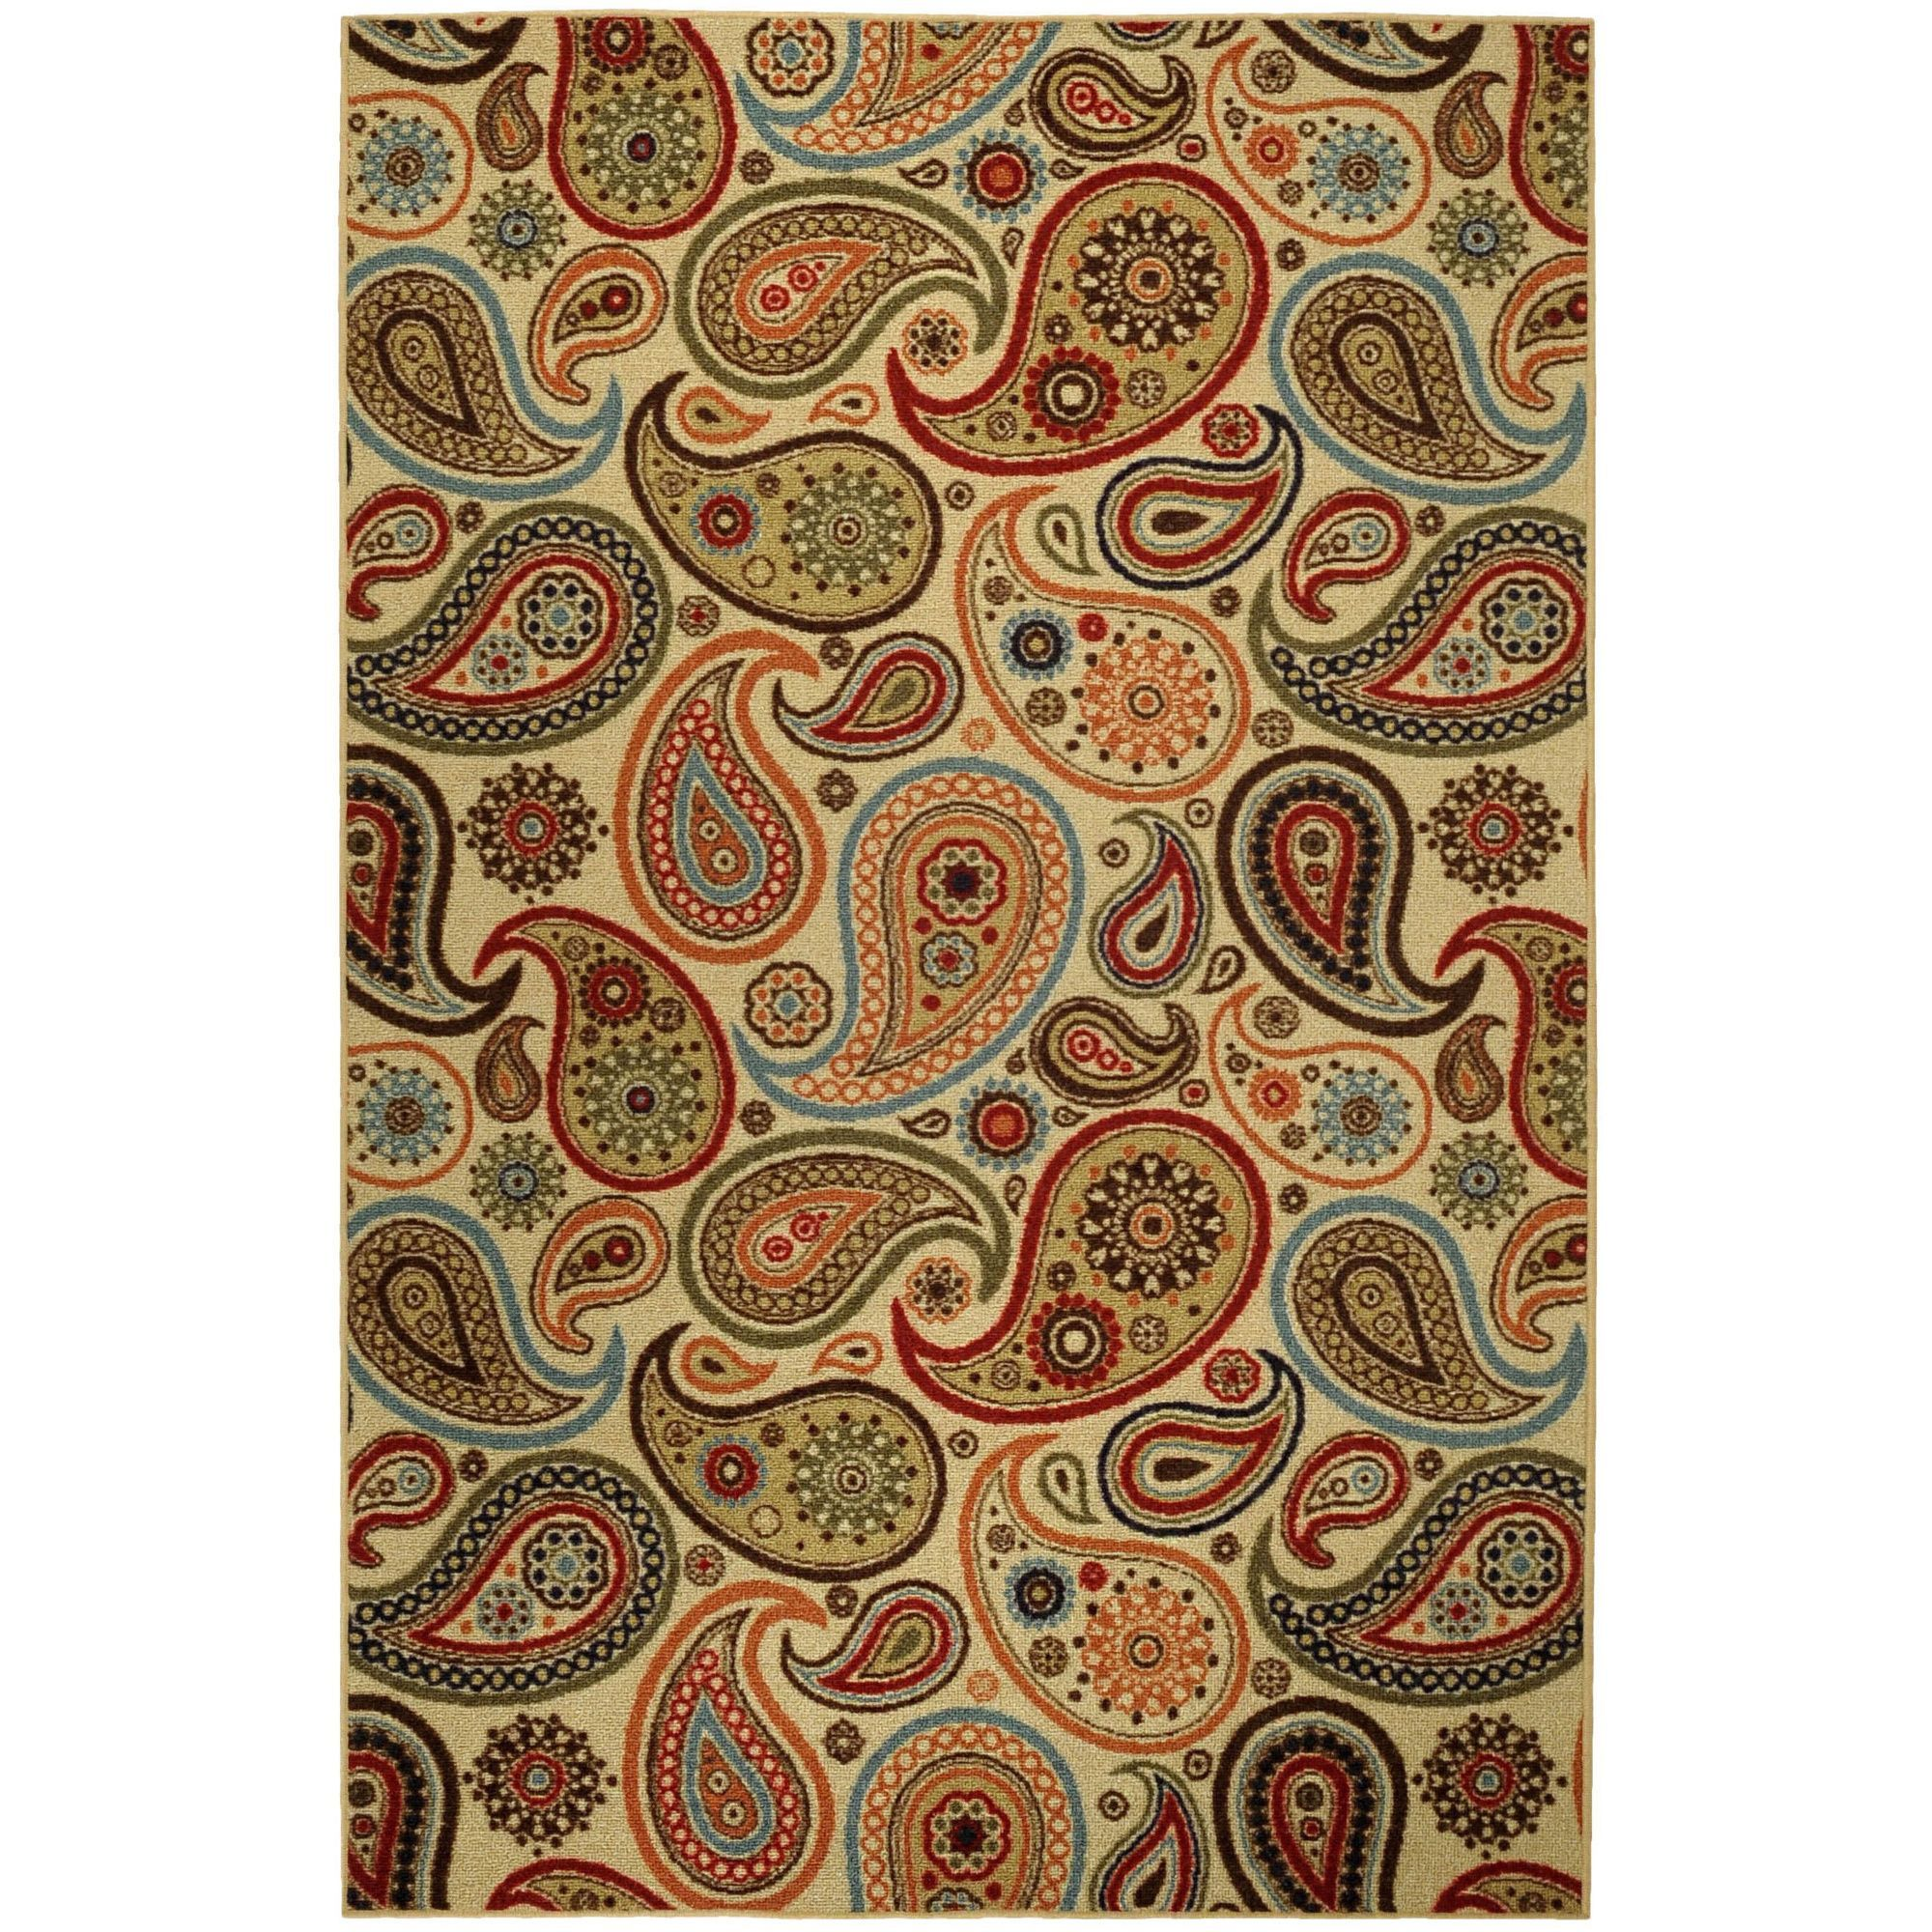 Rubber Back Ivory Paisley Floral Non Skid Area Rug 5 X 6 6 5012